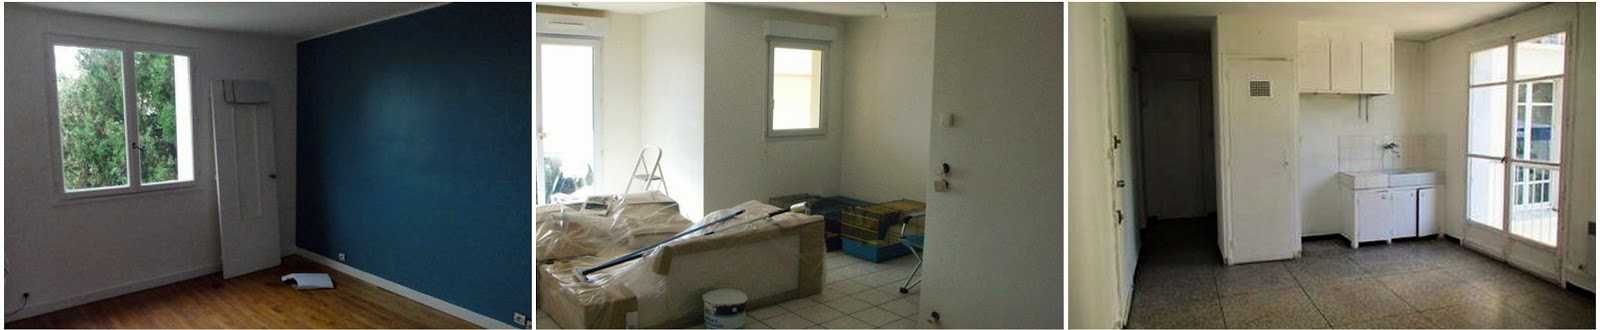 renovation PEINTRE EN BATIMENT appartement